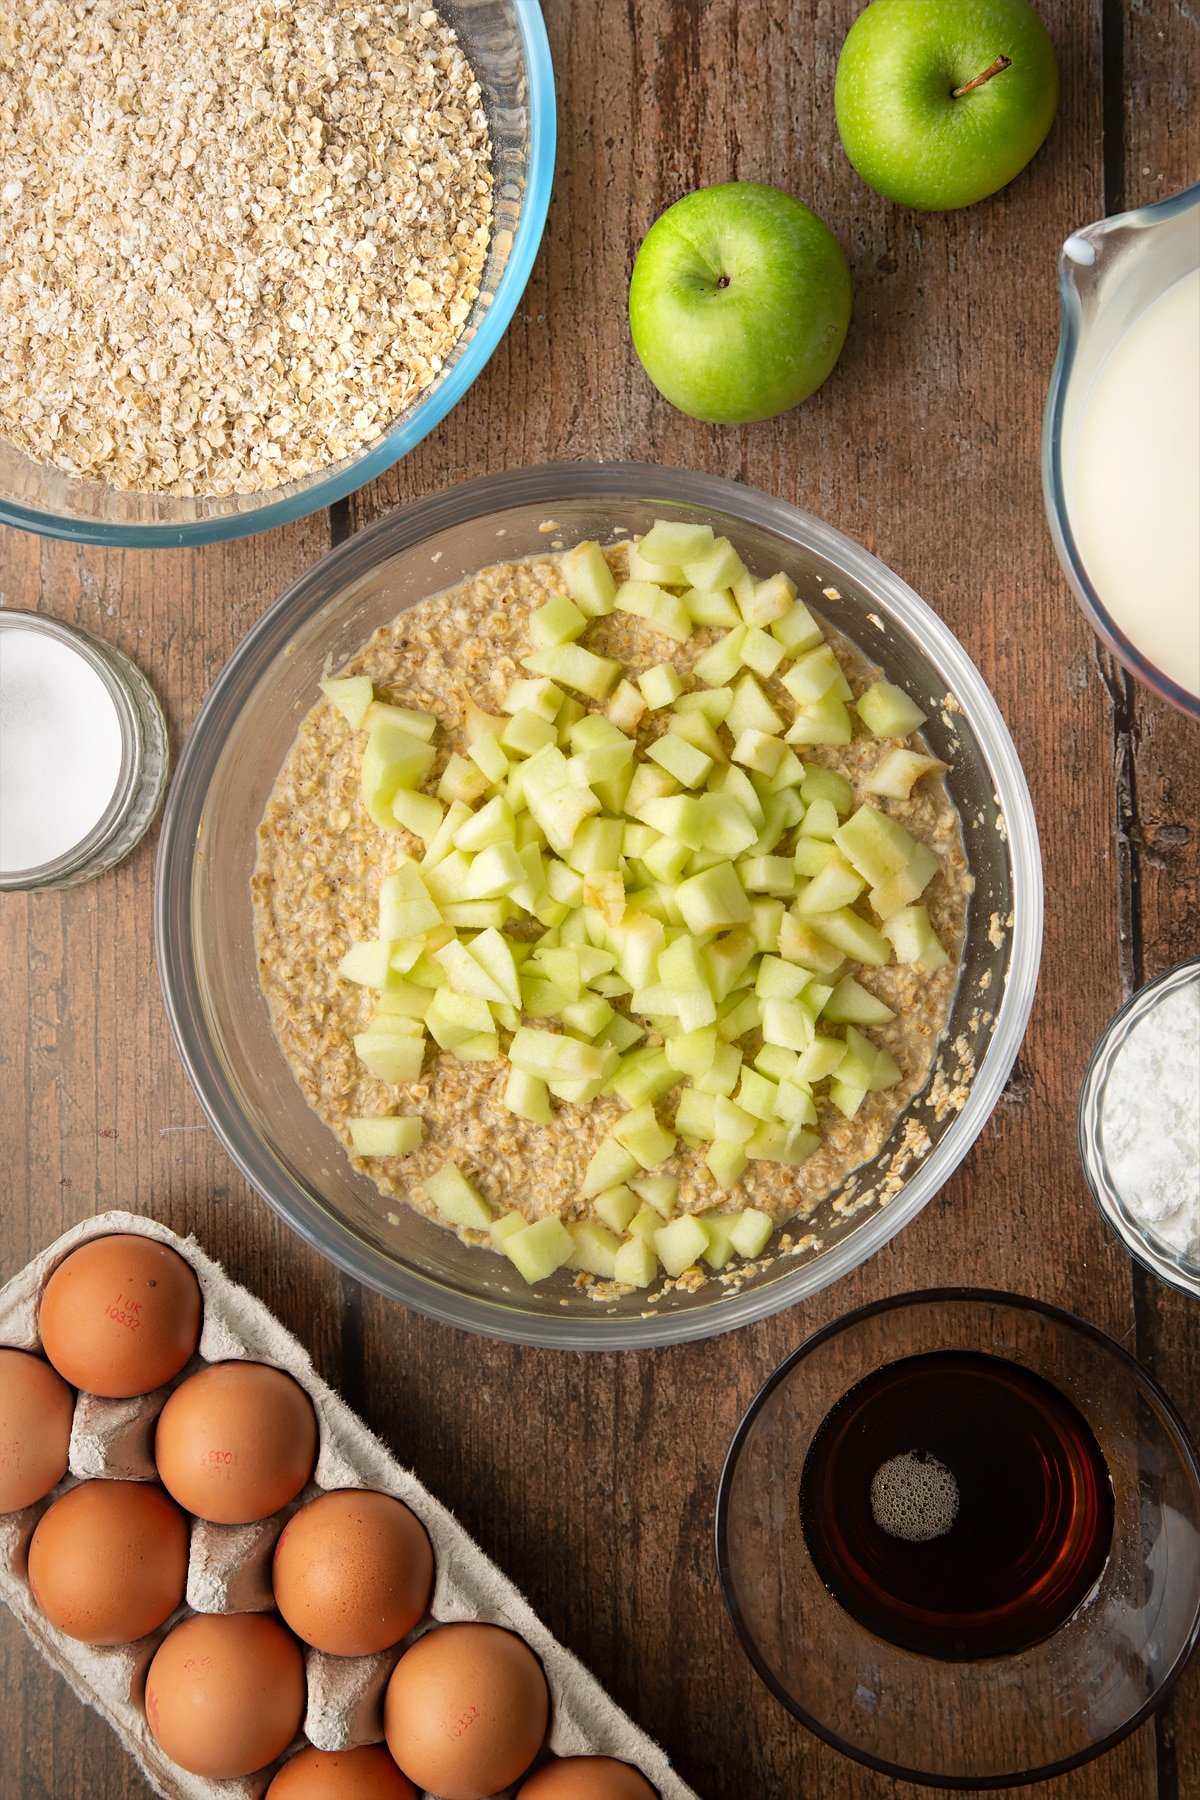 Oats, baking powder, salt, milk, eggs and maple syrup, mixed in a glass mixing bowl with apple pieces on top. Ingredients to make porridge squares surround the bowl.